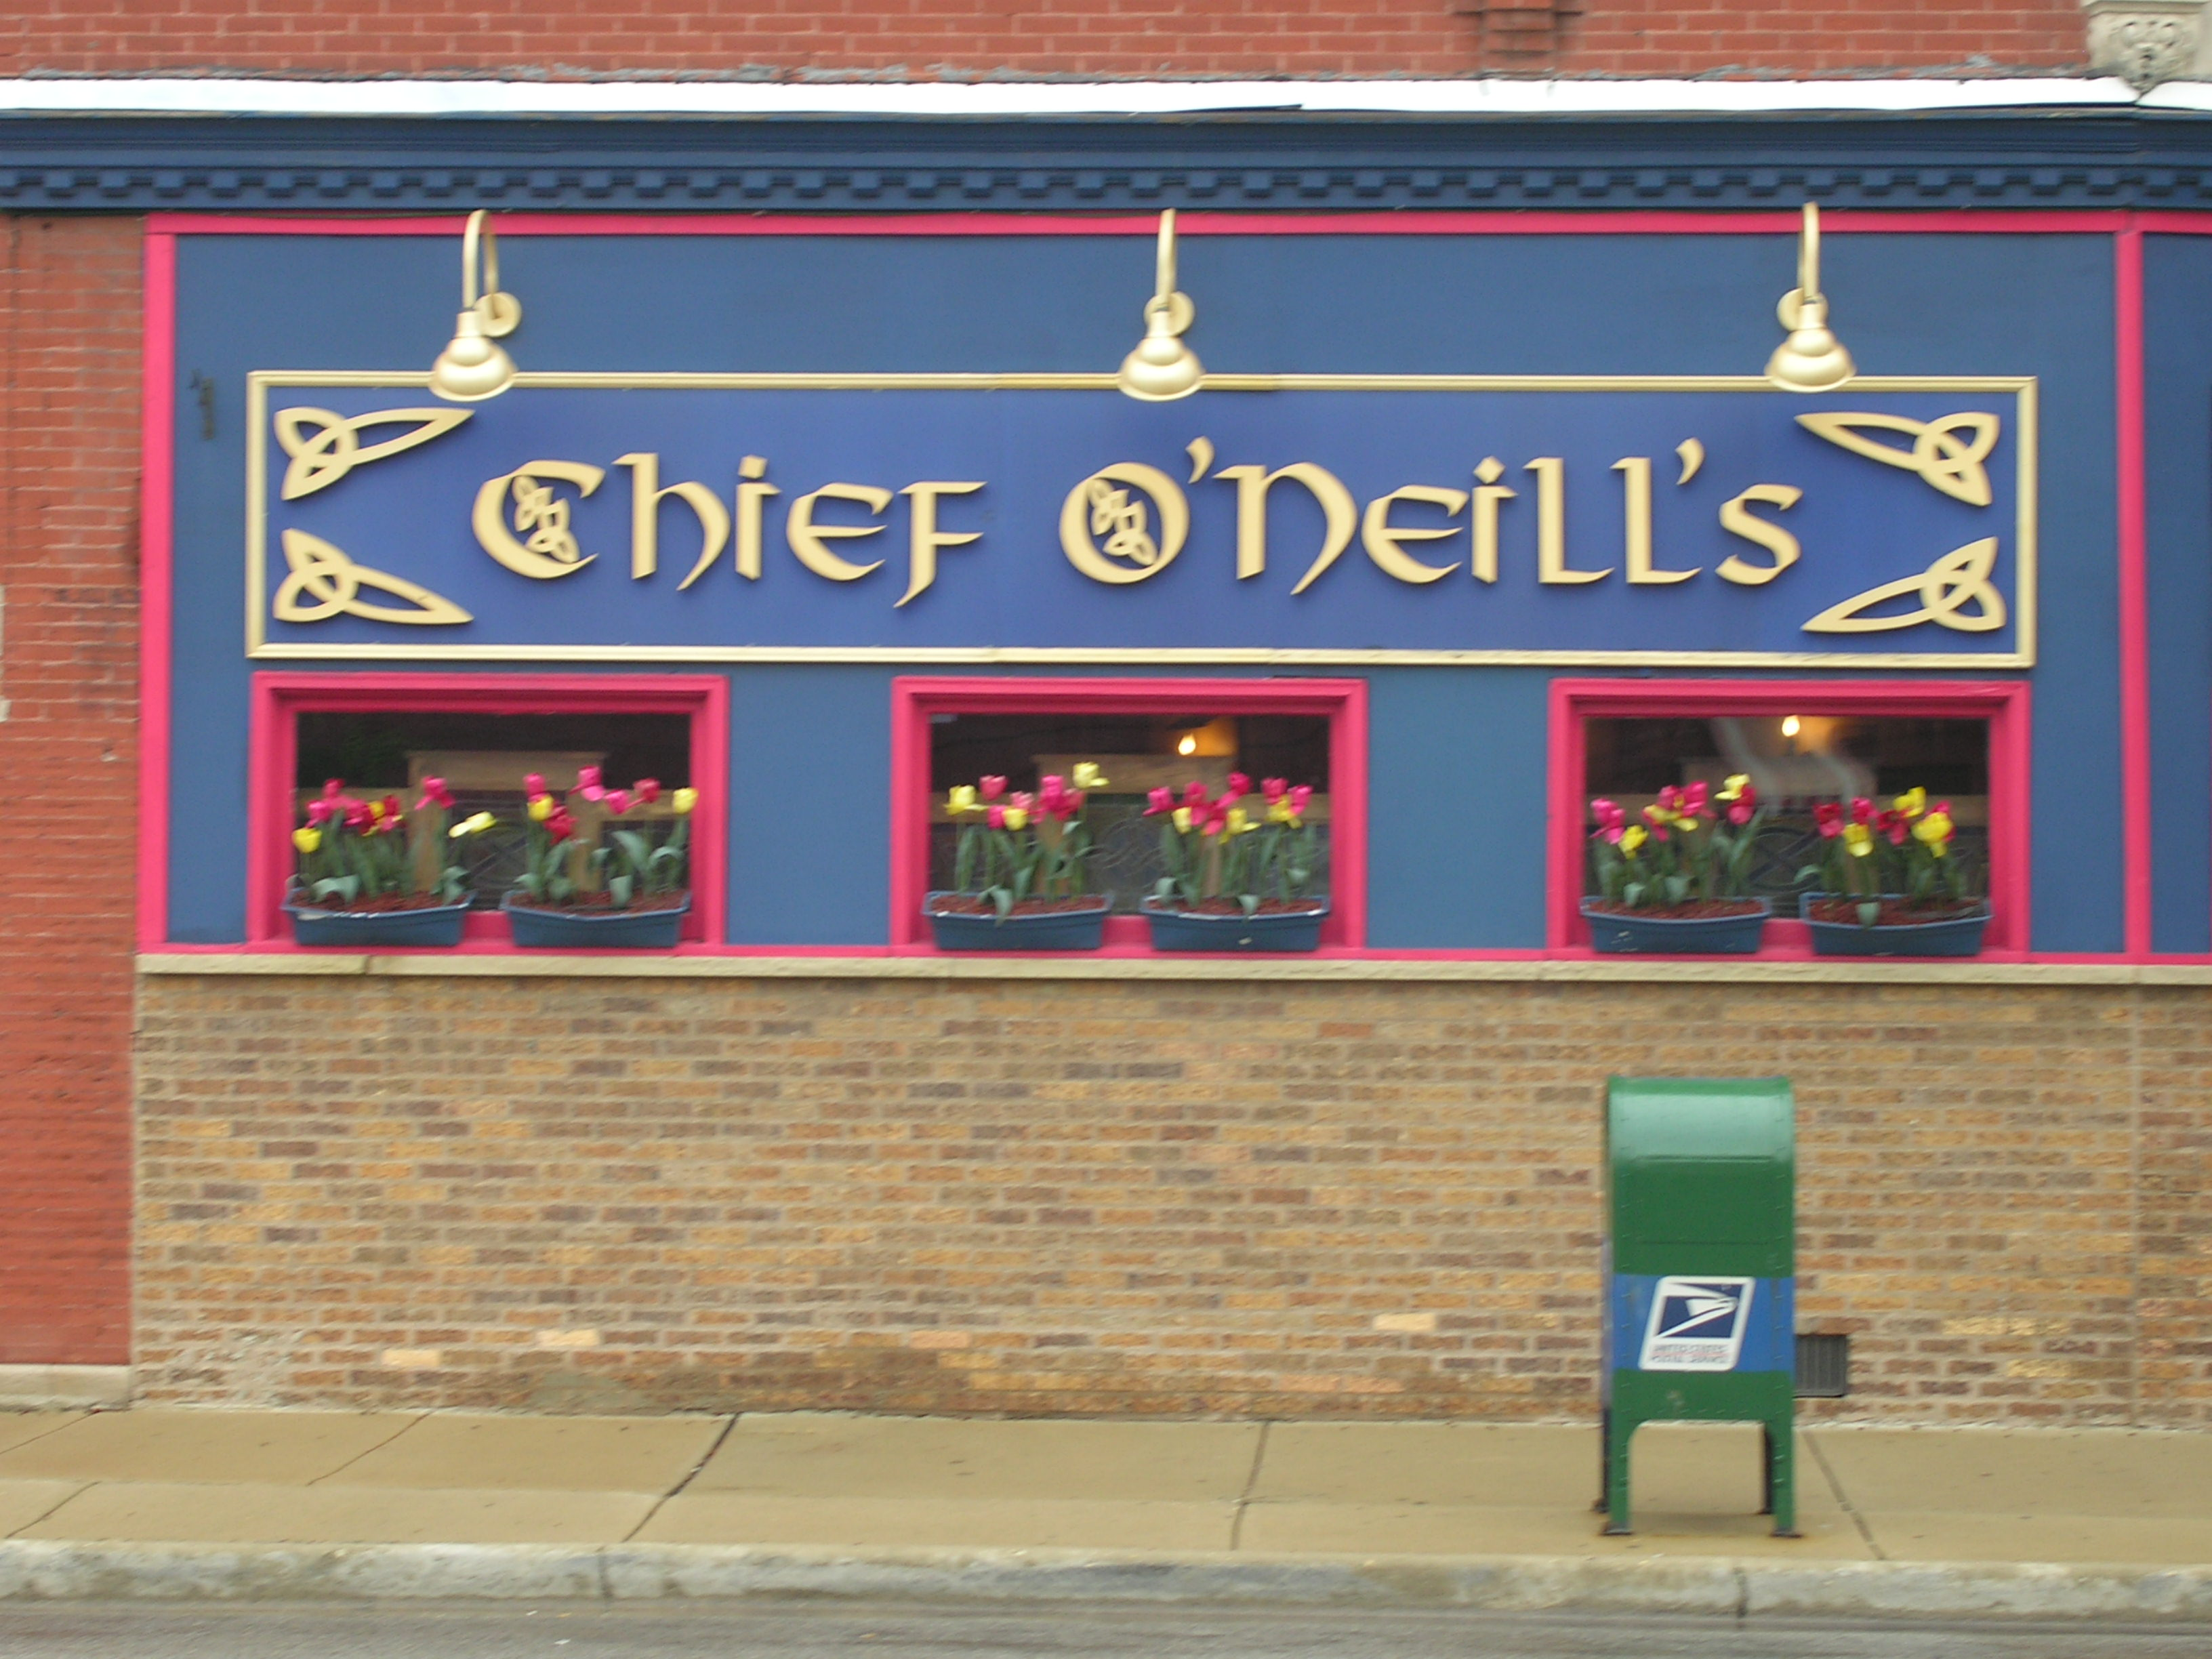 Chief O'Neill's, 3471 N Elston Ave